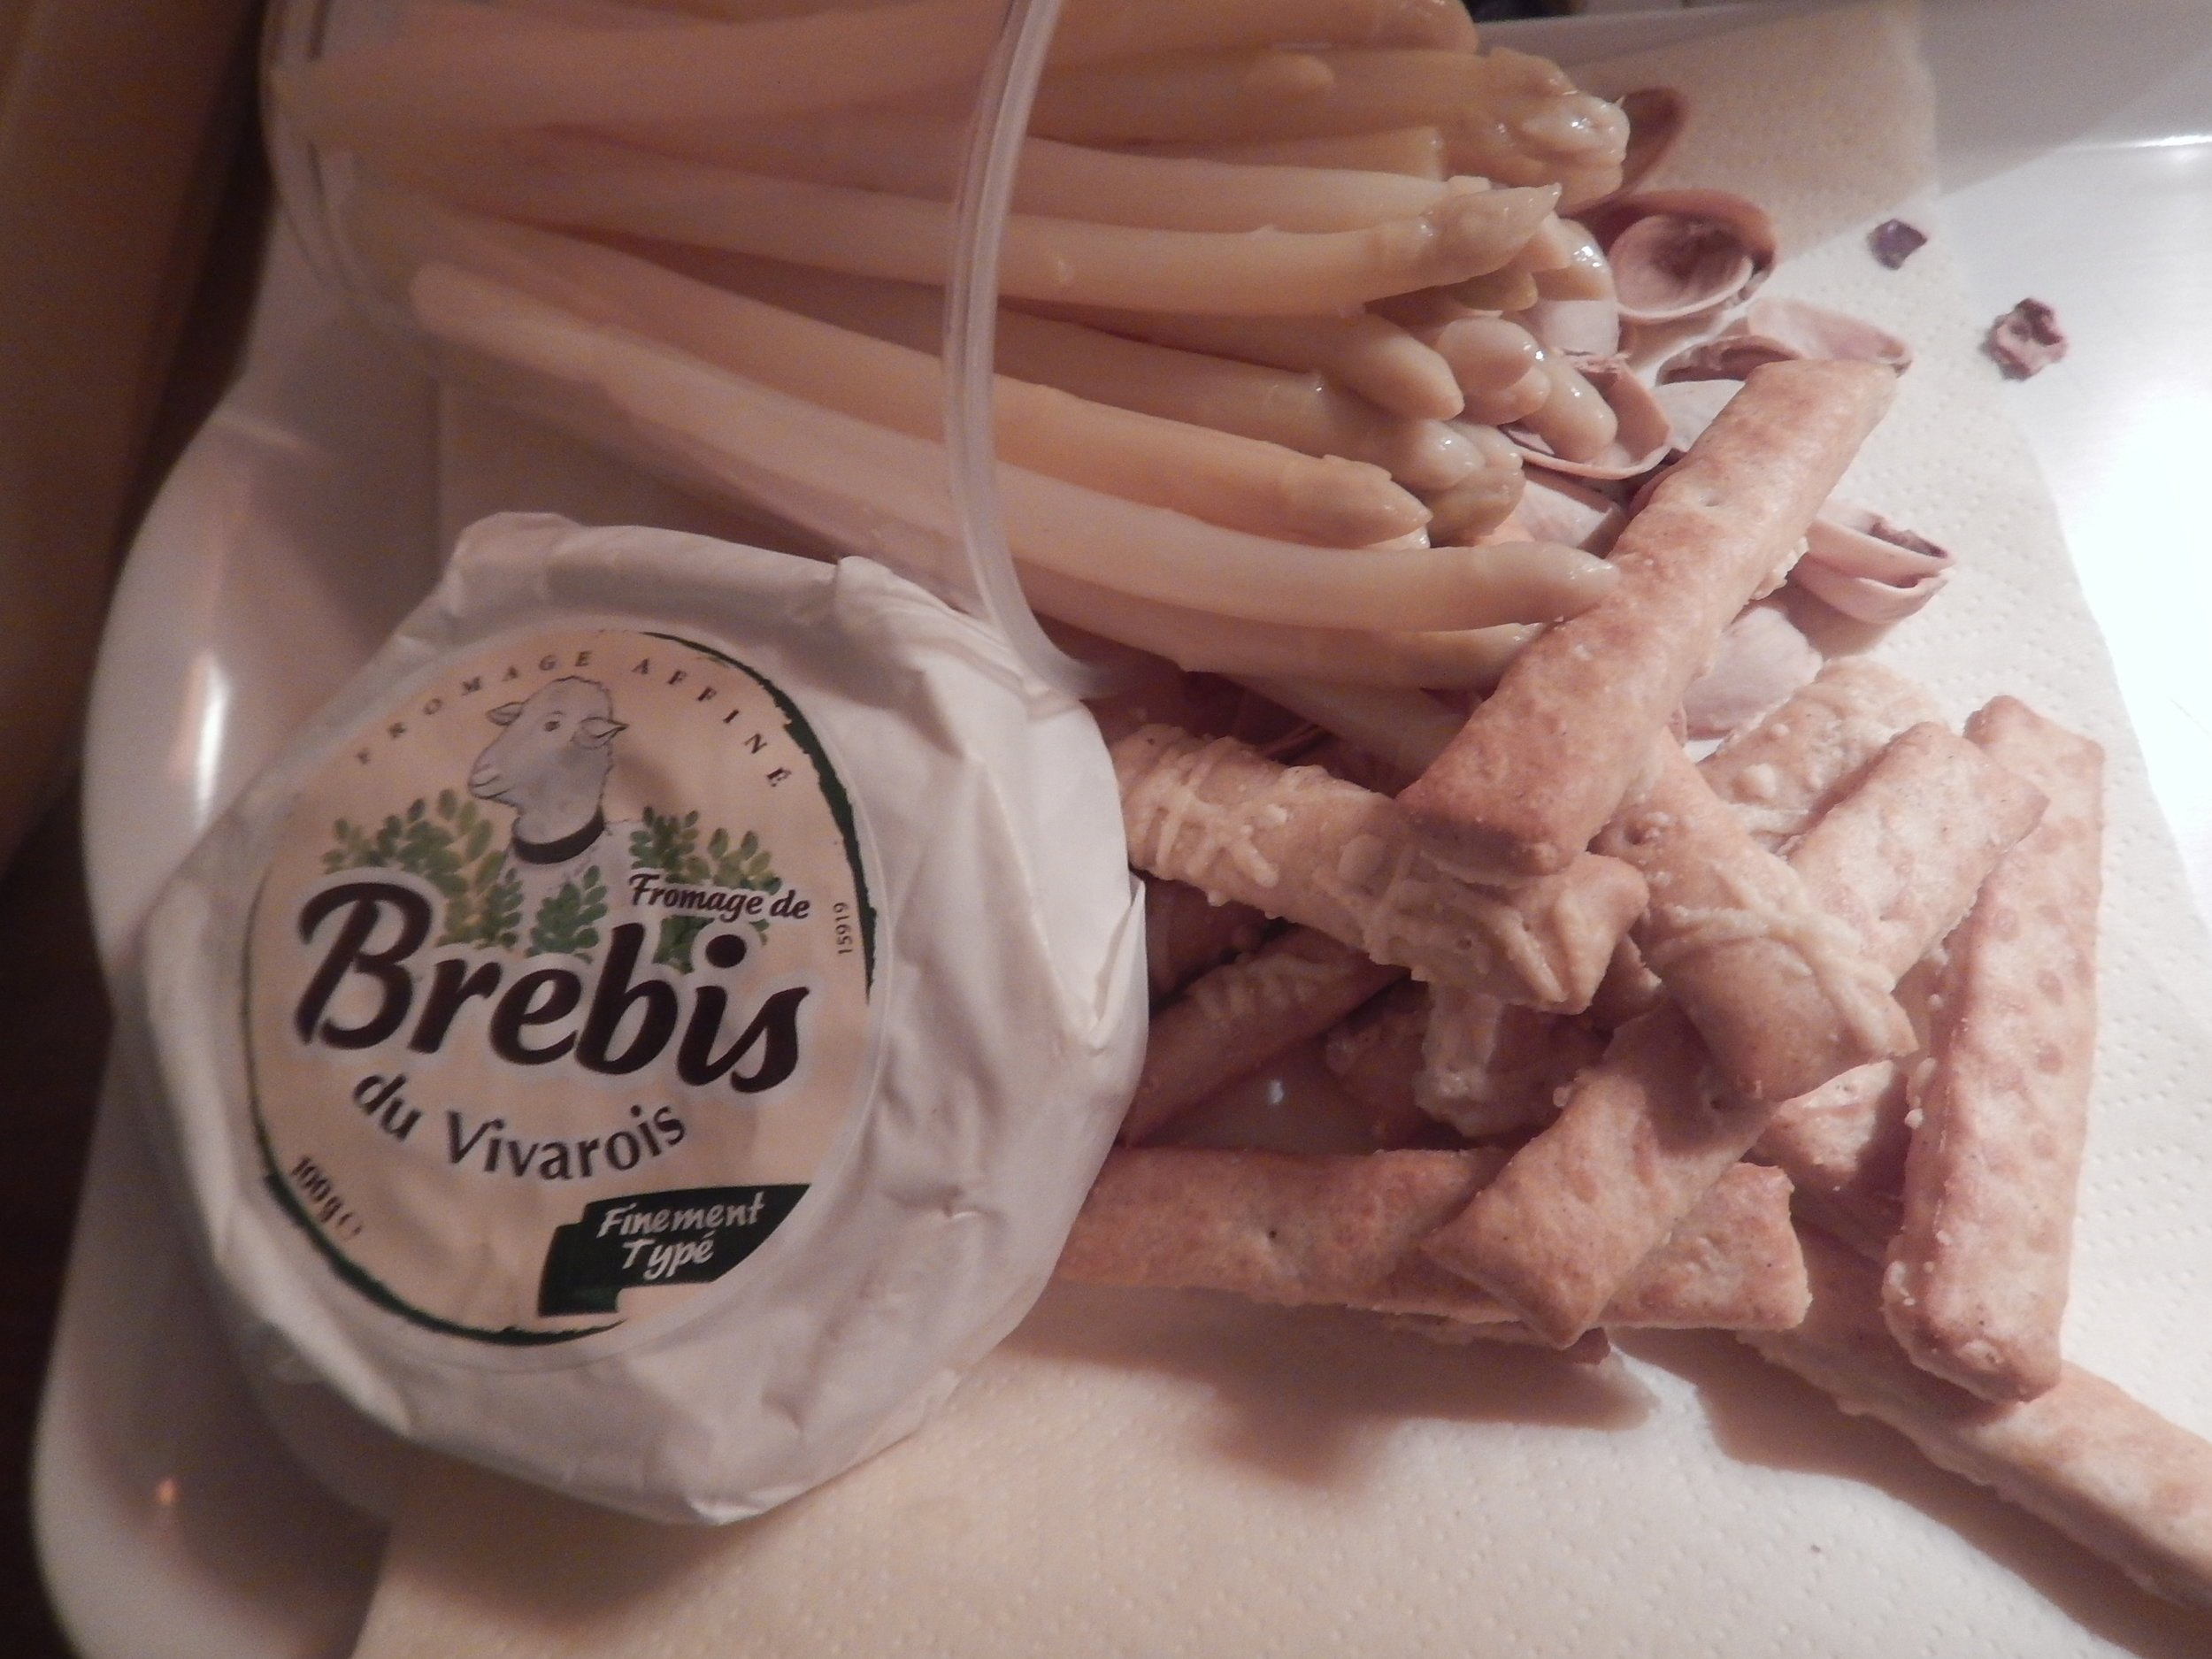 This soft sheeps cheese was unbelievably soft. I used the cheese sticks and dipped them into the Brebis. I loved it, but I think the goats cheeses are still my fave.